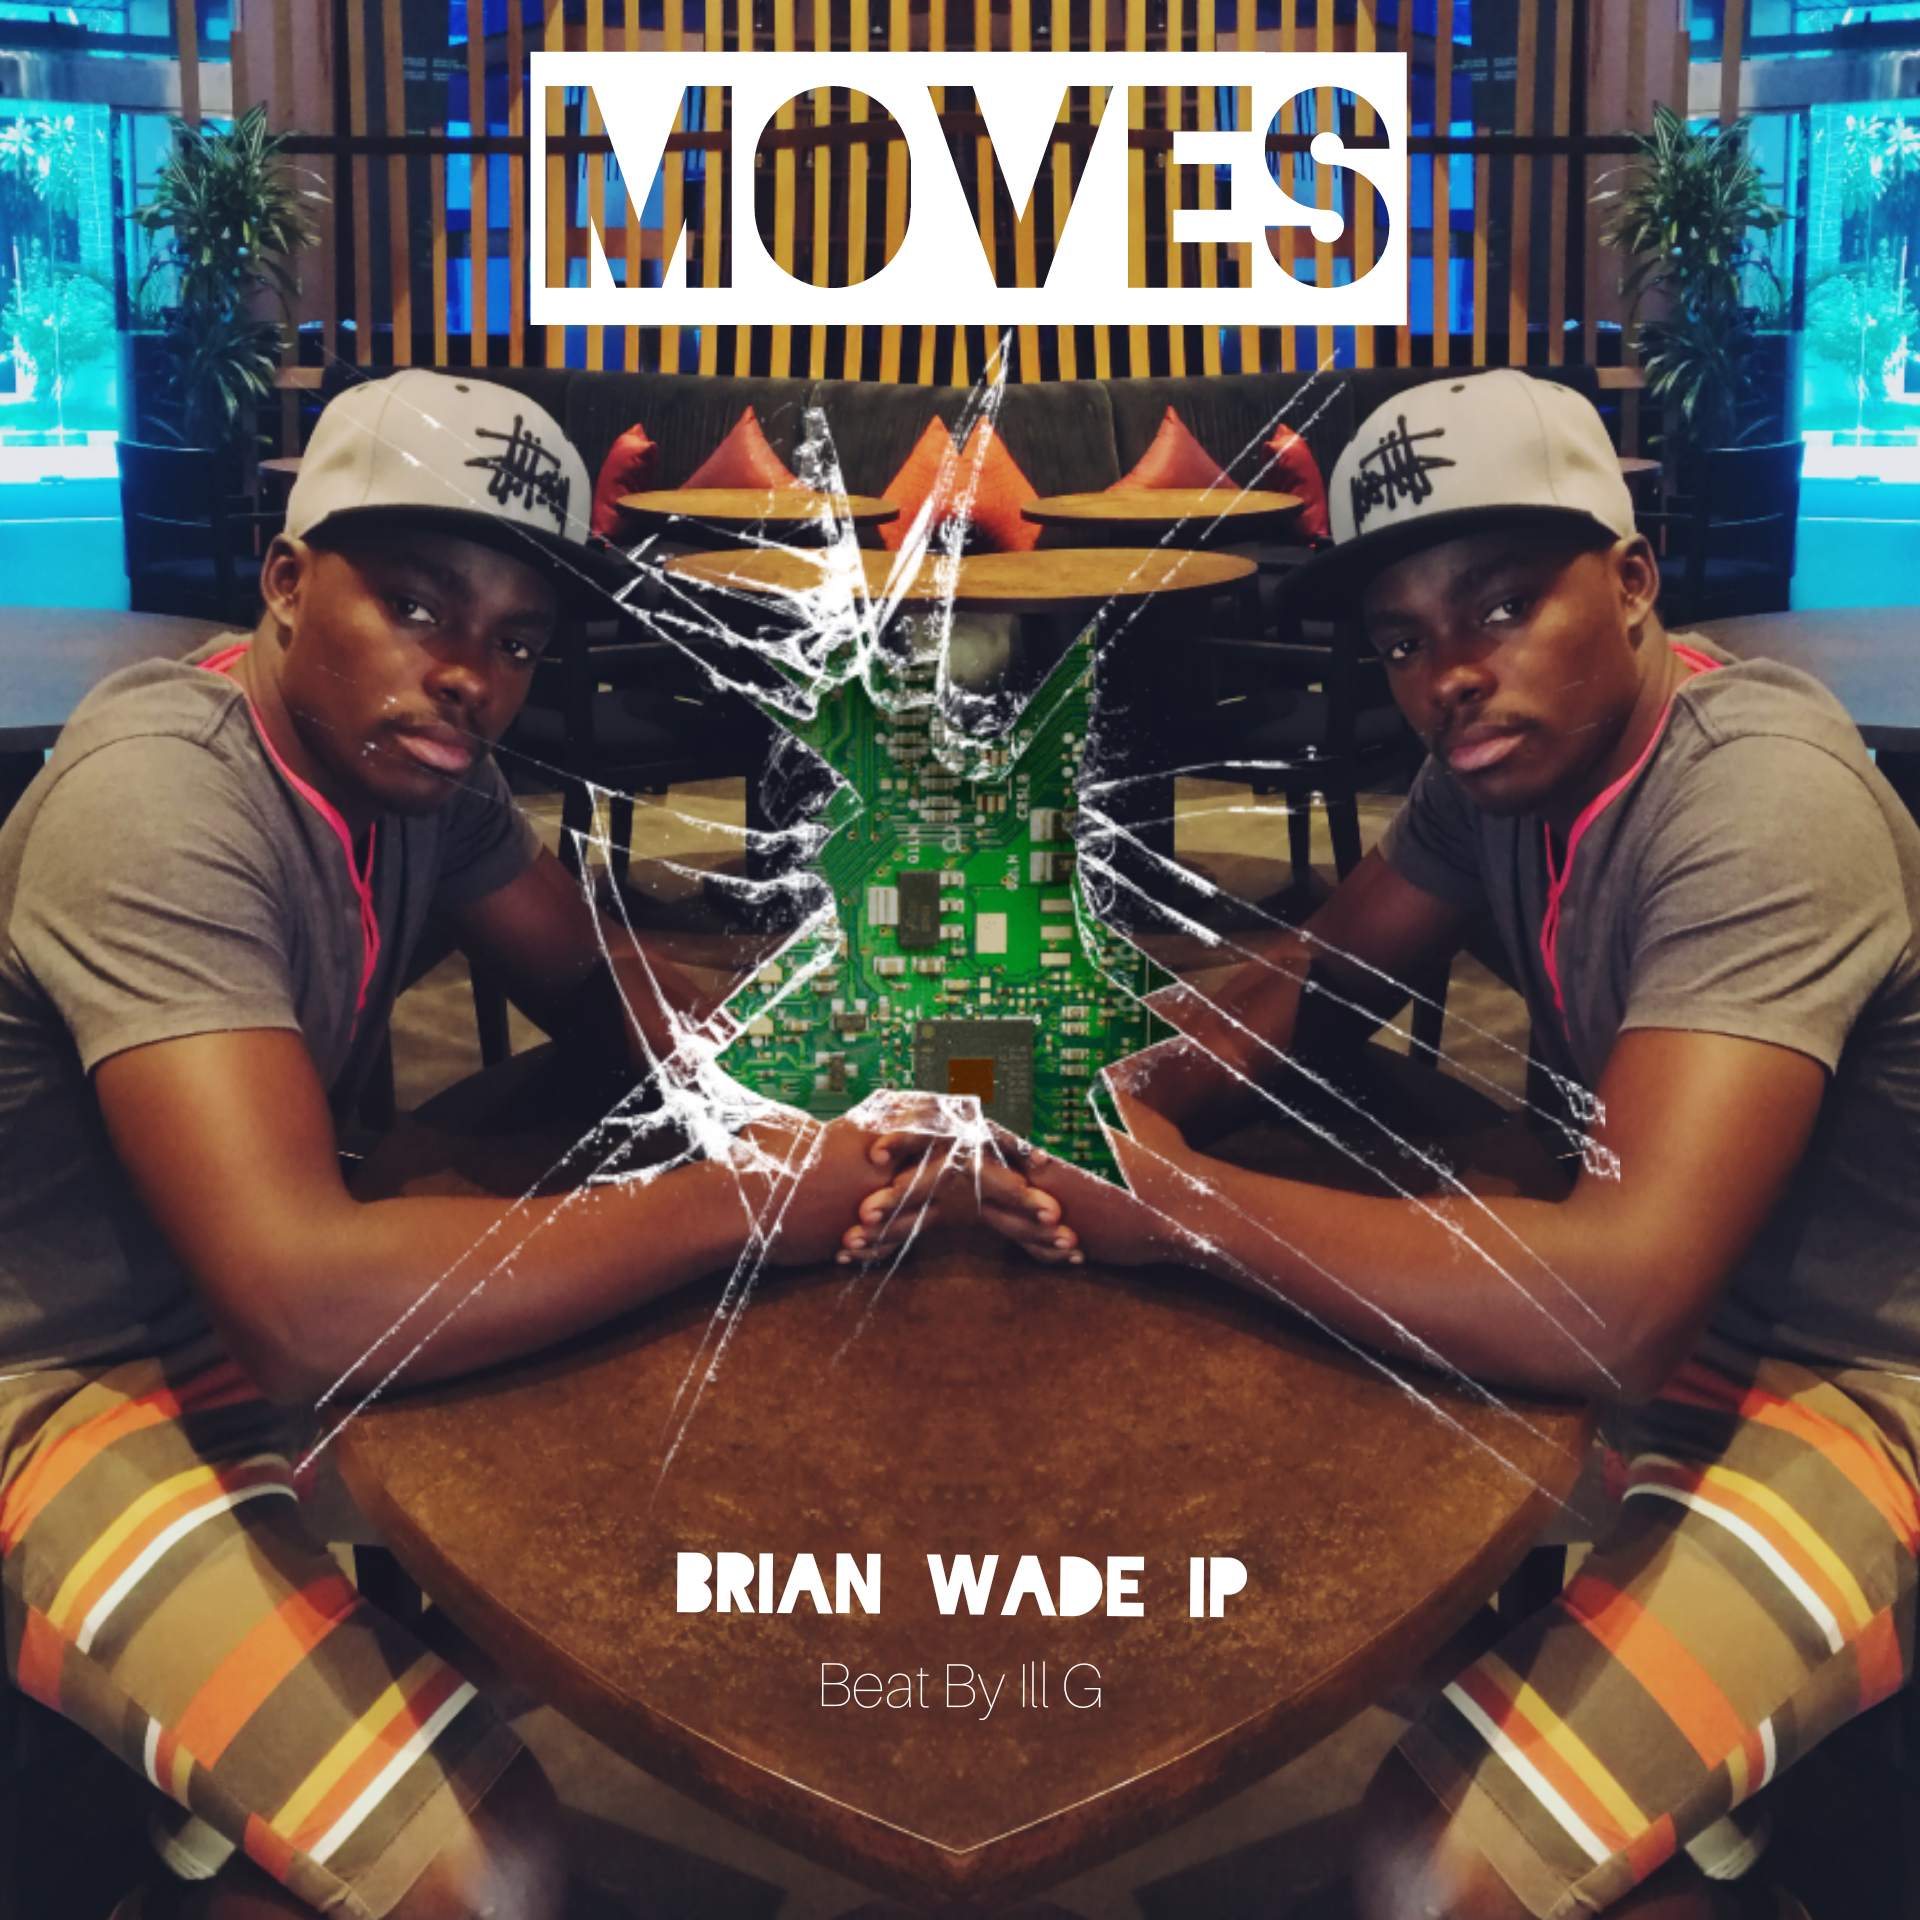 Brian Wade - Moves - music Video